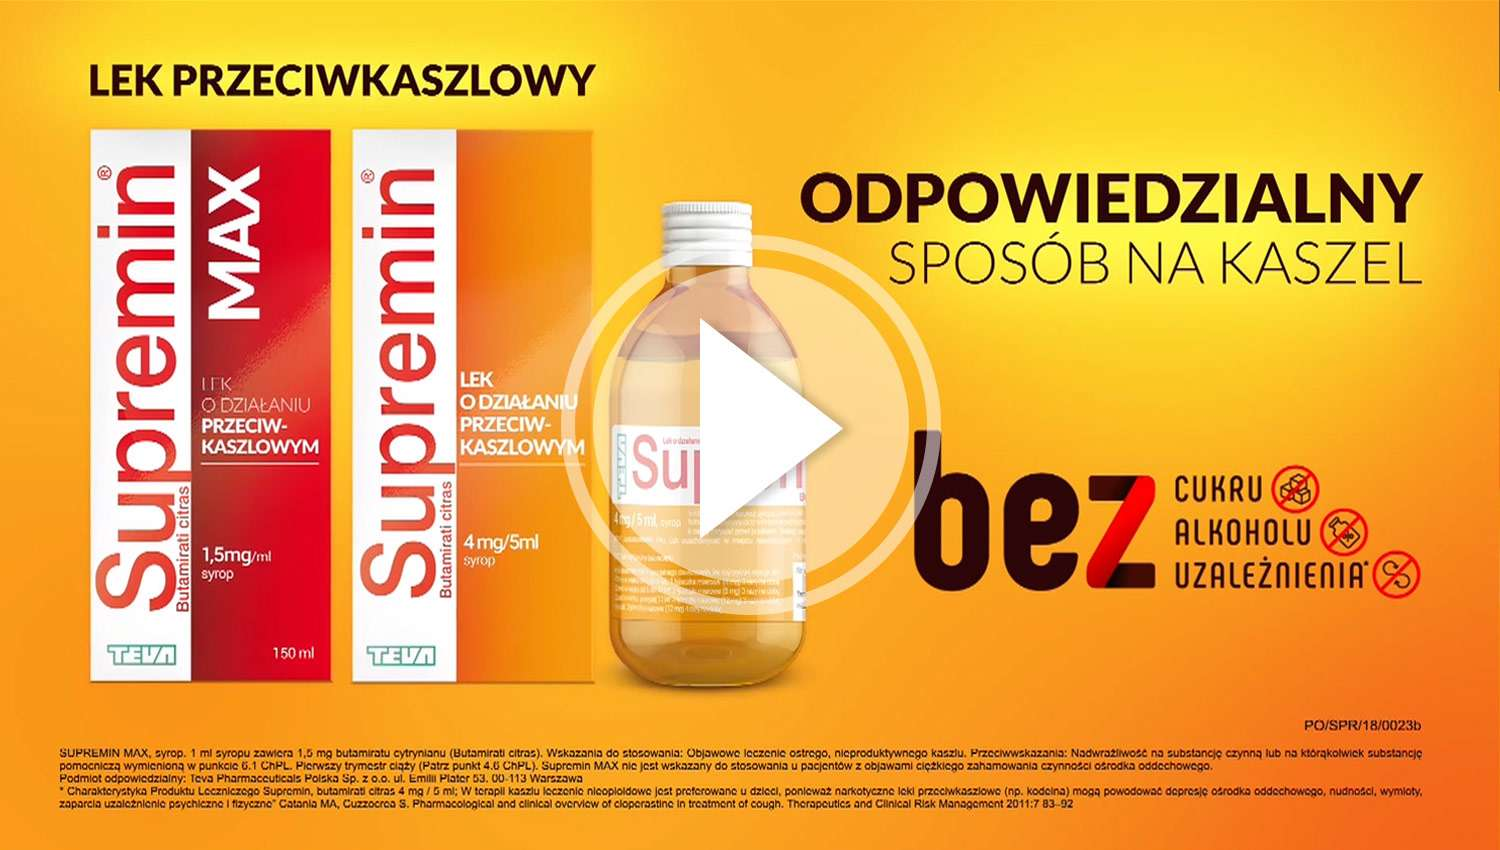 Eskadra - Supremin - Teva Operations Poland sp. z o.o.